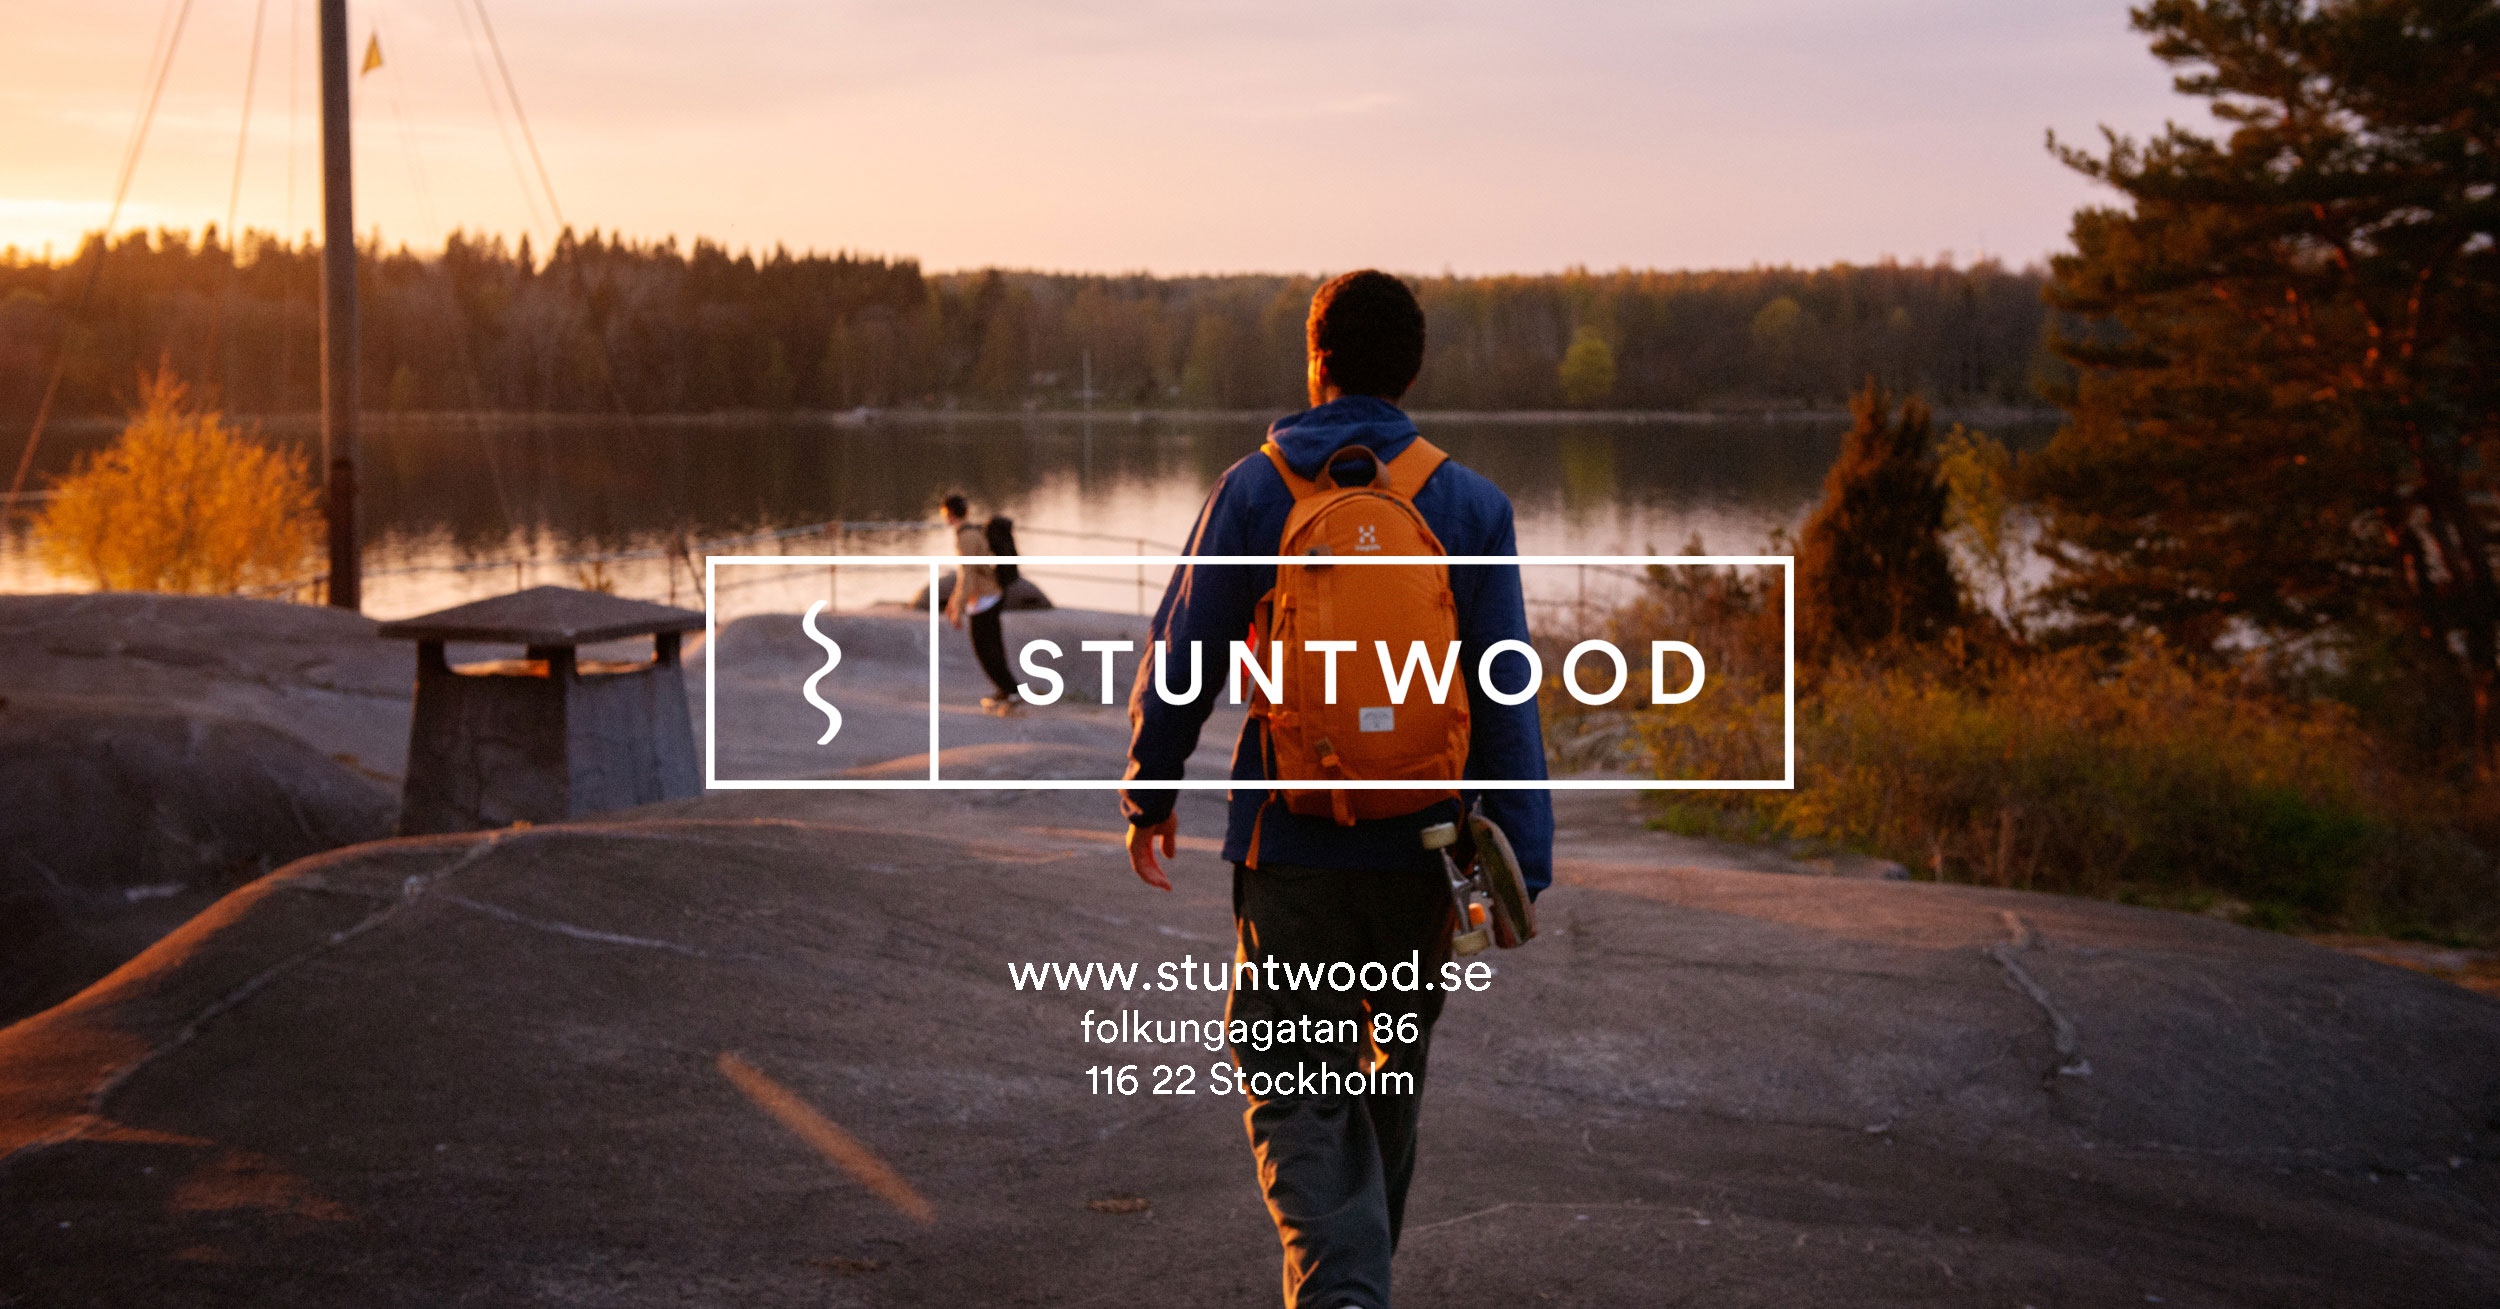 Stuntwood Distribution AB